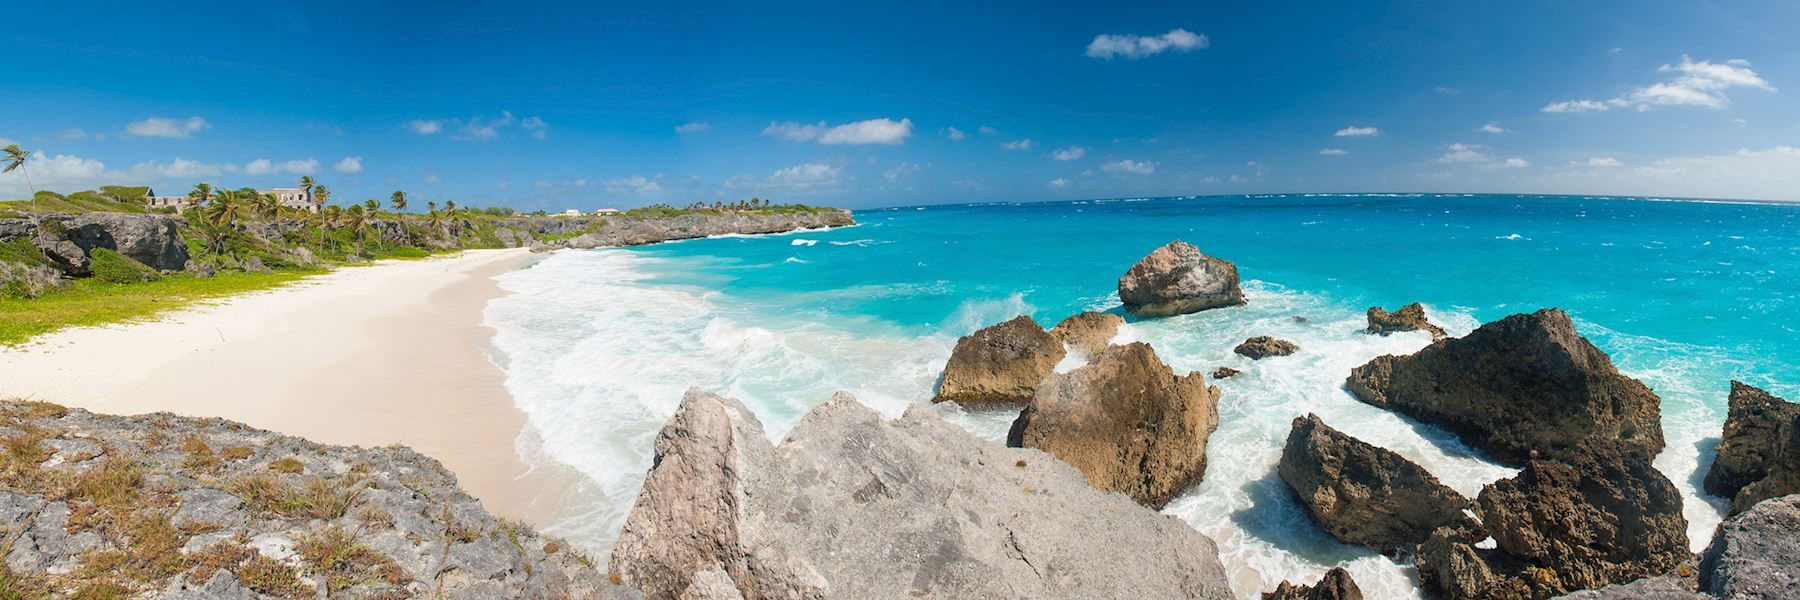 Tailor made holidays to barbados audley travel for Cheap honeymoon ideas east coast